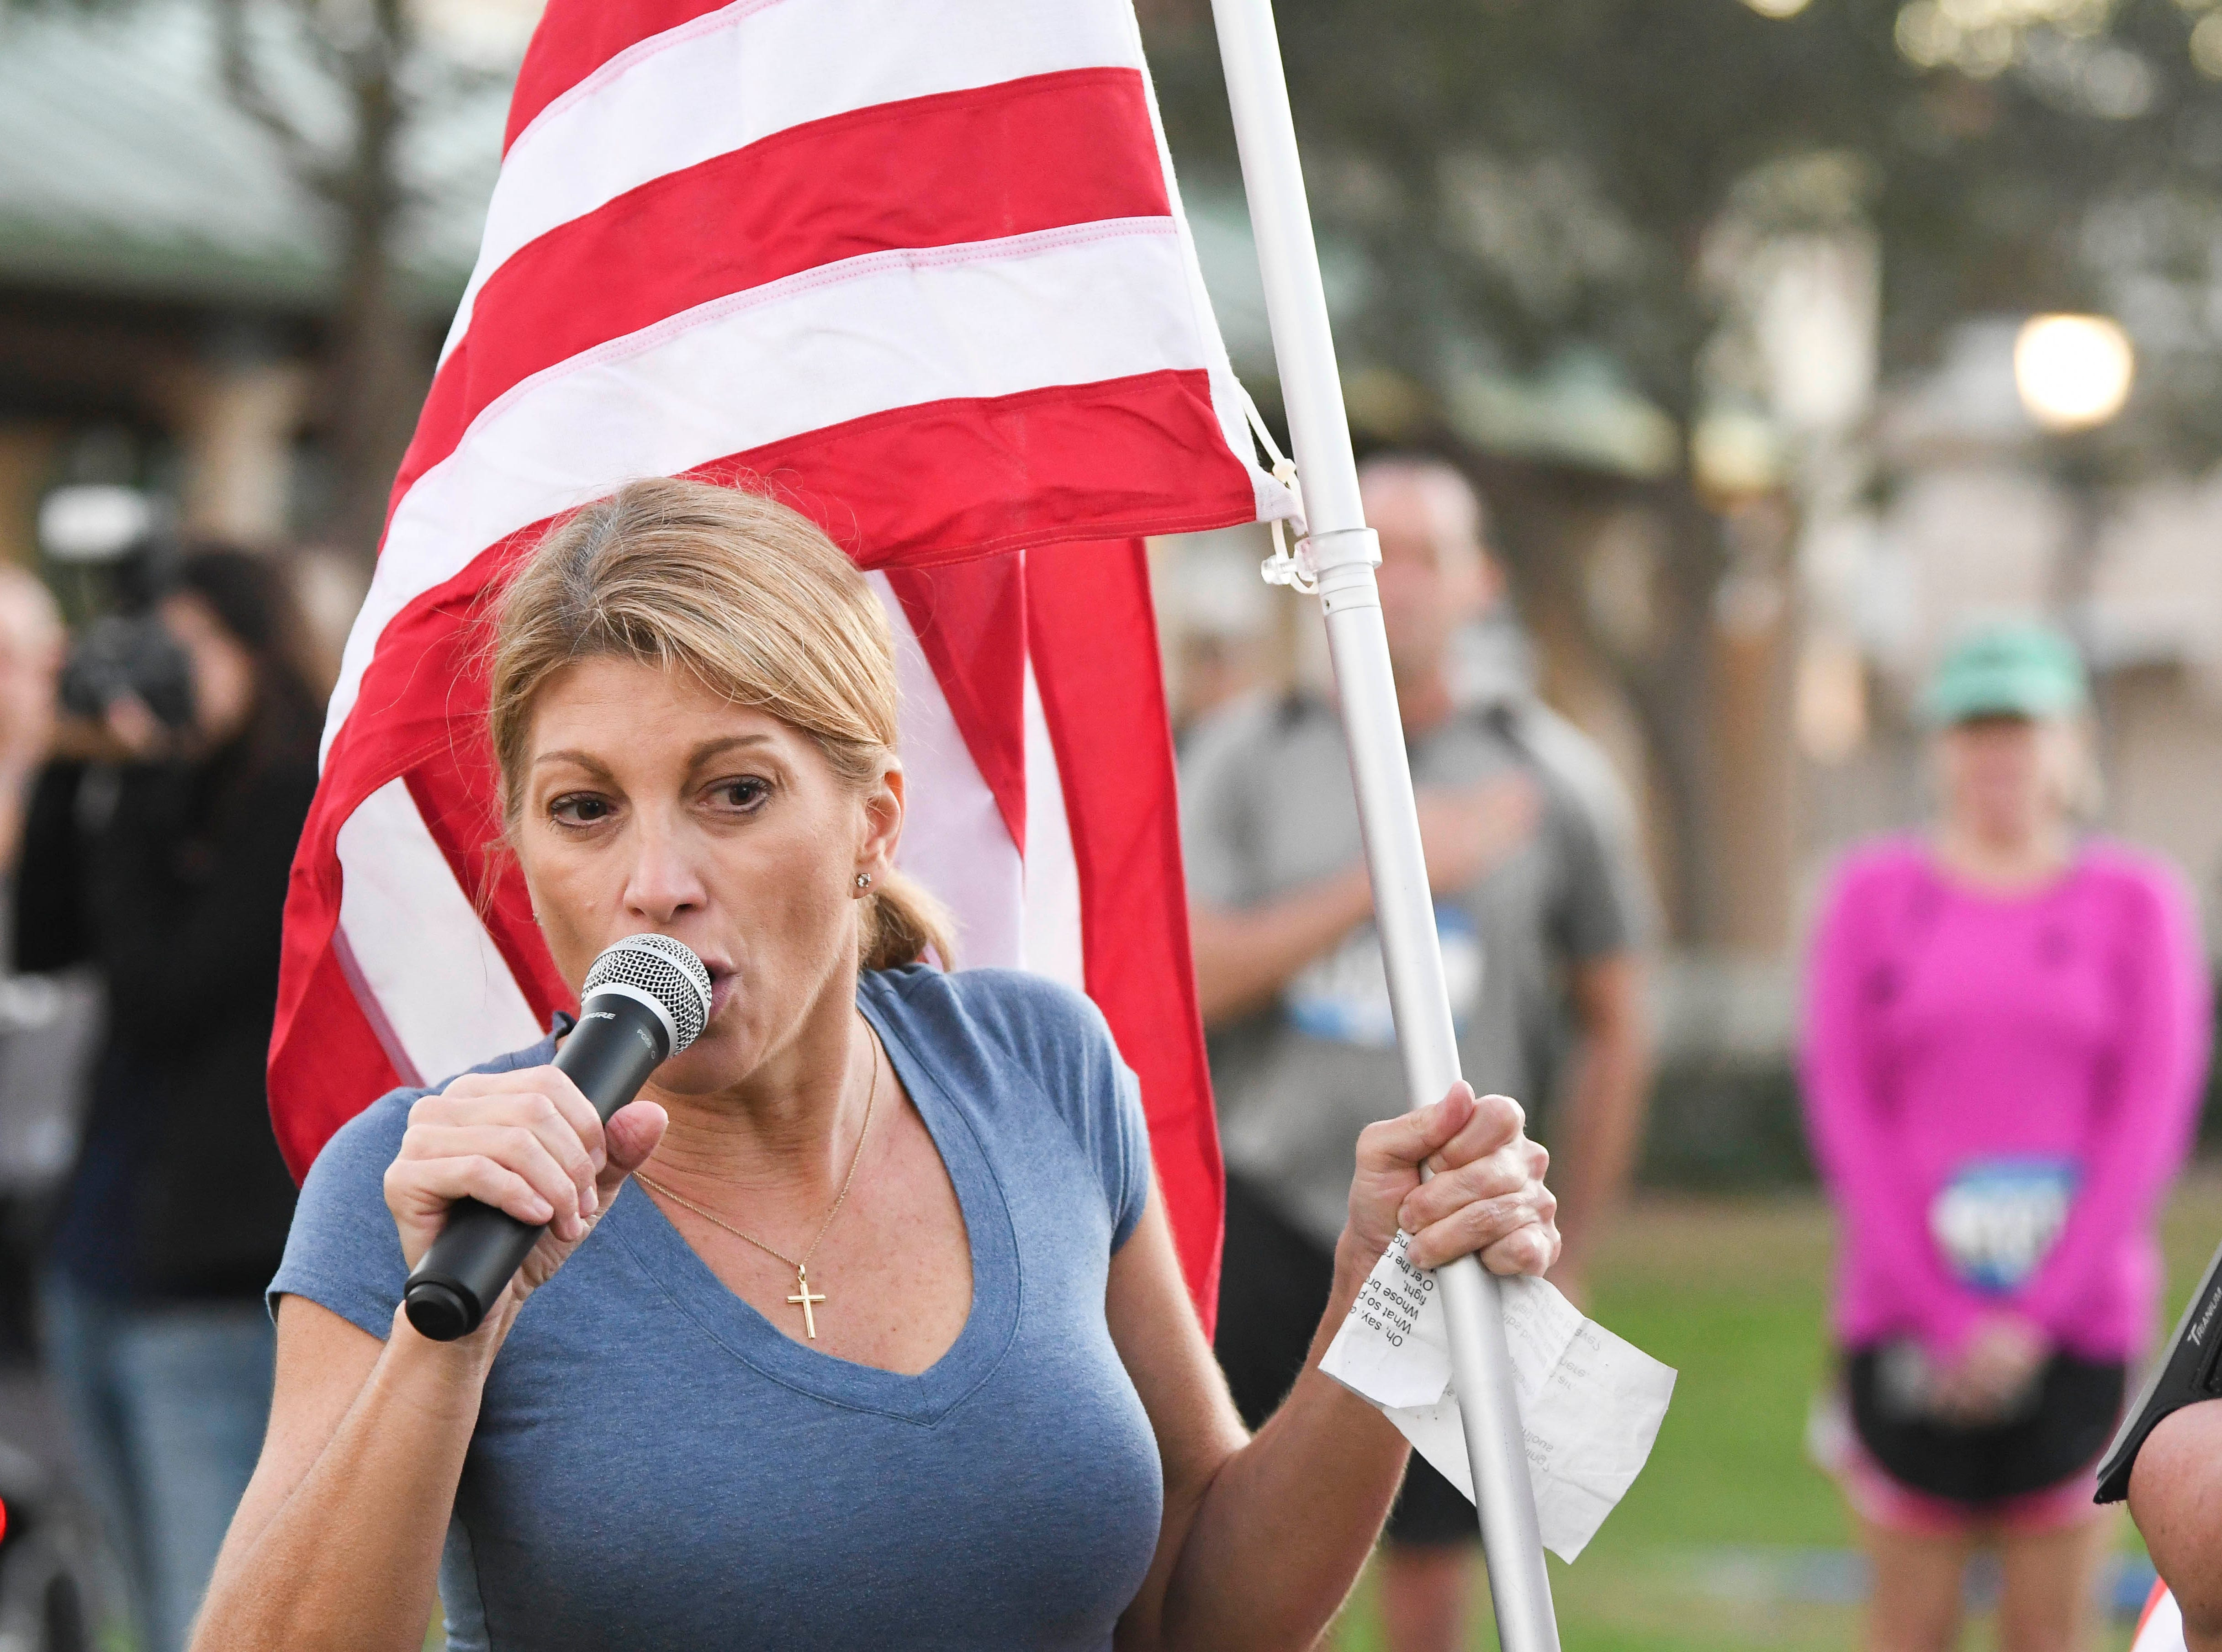 Donna Bollinger sings the National Anthem before the start of the inaugural Game On Run for Responders 5K Run/Walk run through the streets of Cocoa Village.  Proceeds from the event benefit Survive First.